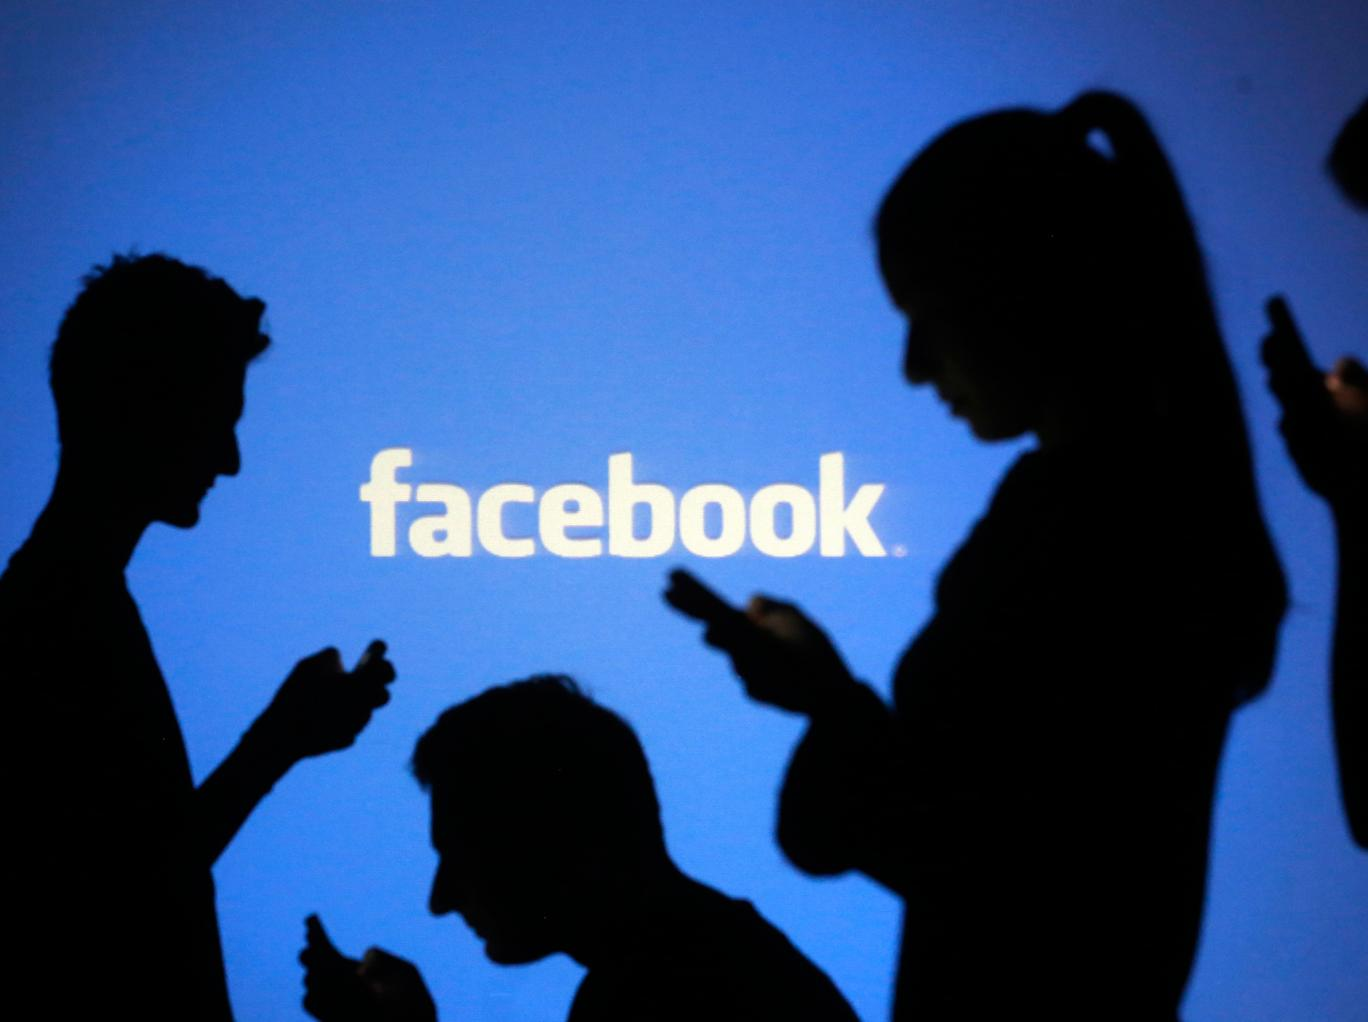 Facebook friends are almost entirely fake Reveals New Study